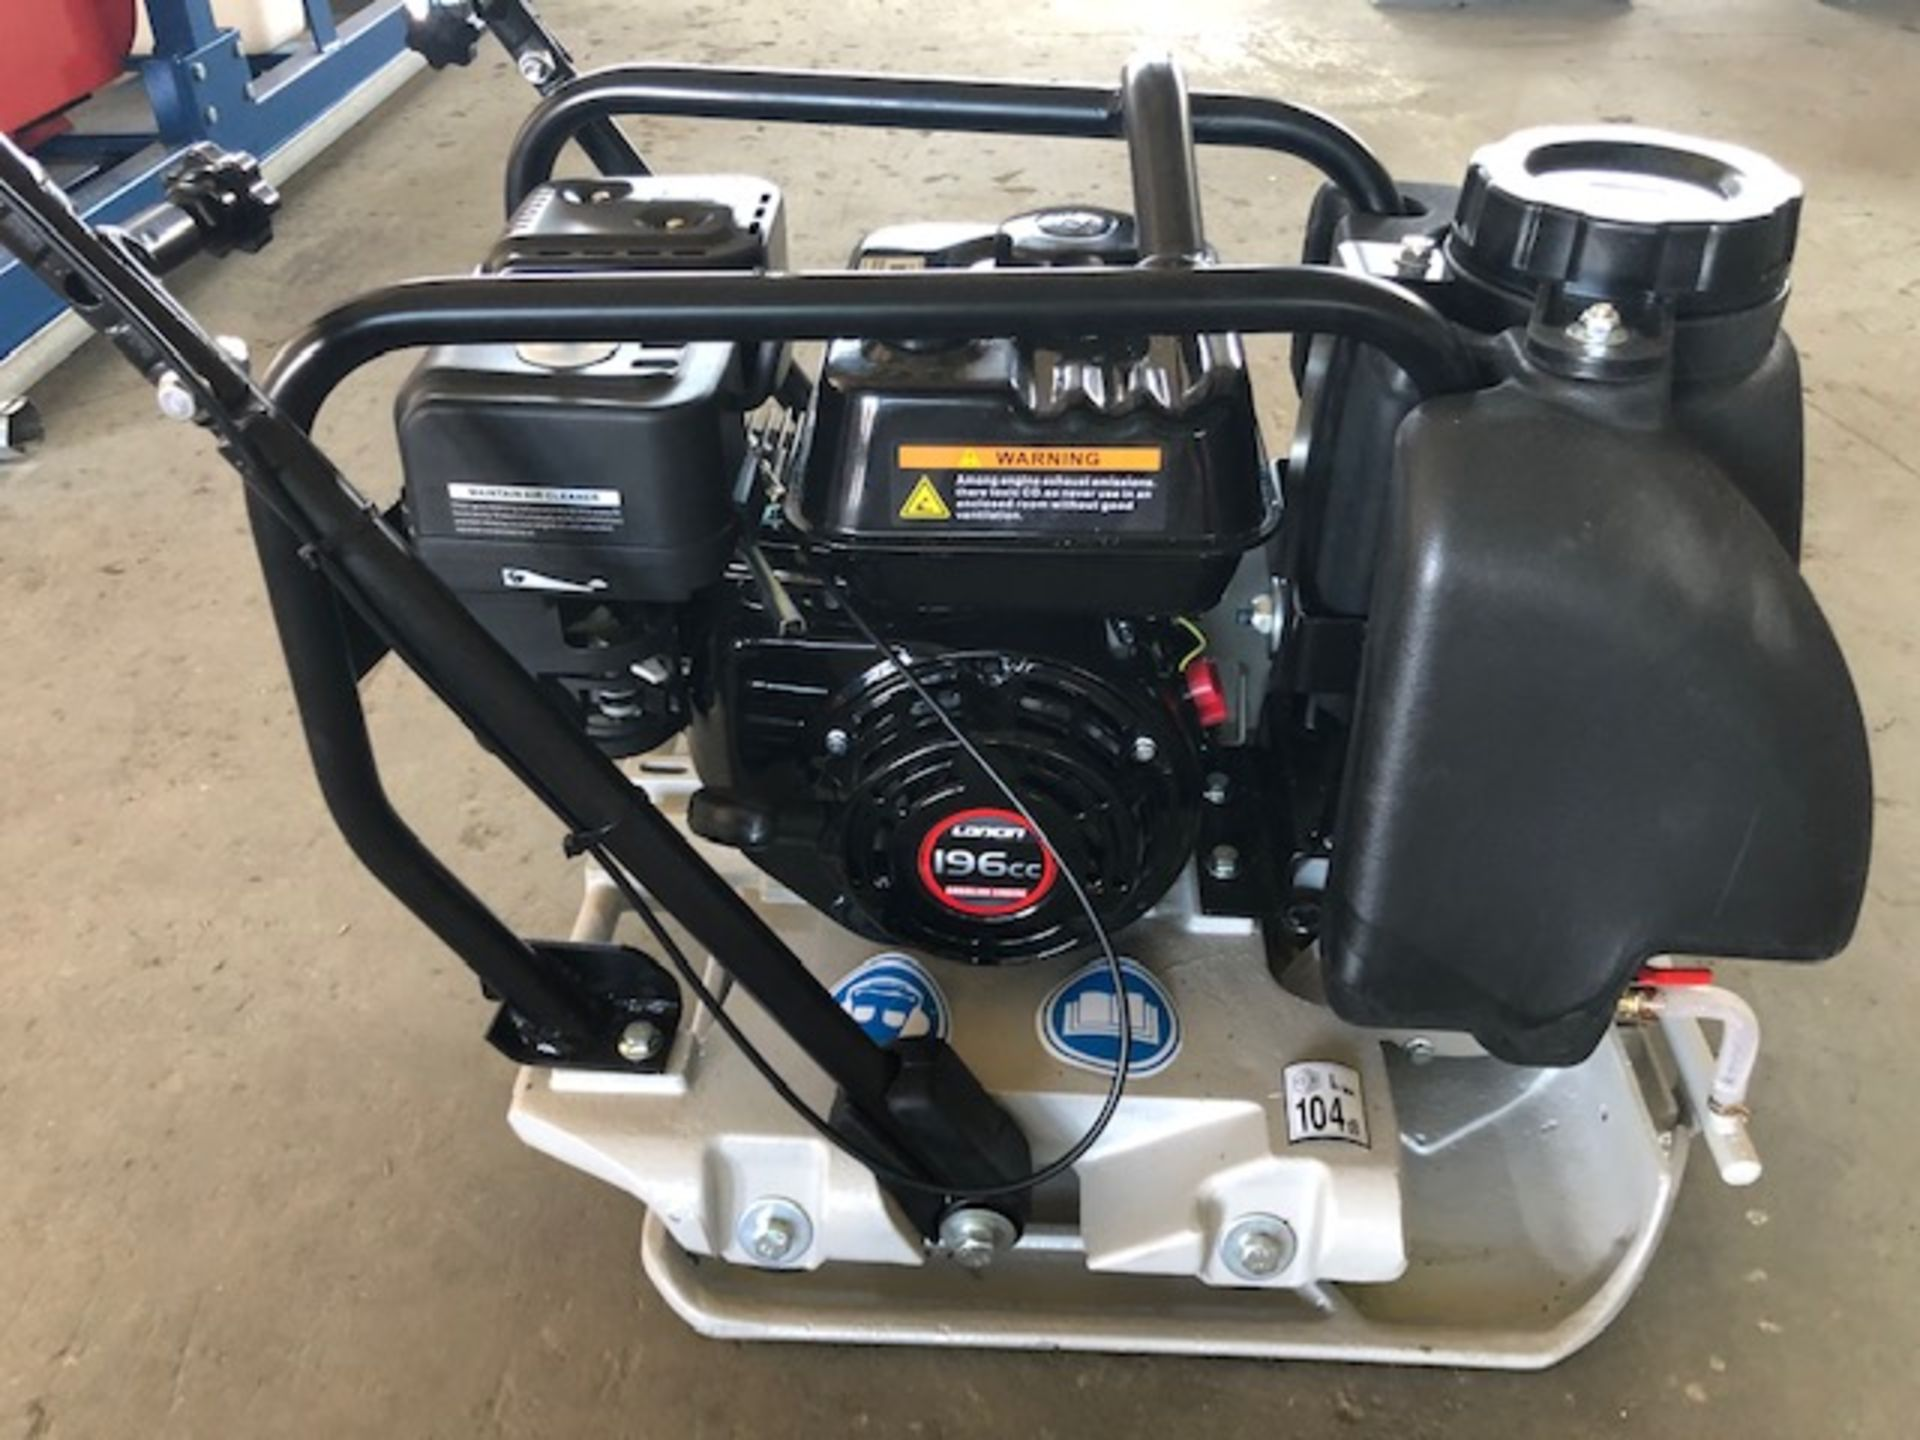 Lot 5 - 2020 Mustang LF-88 Plate Compactor